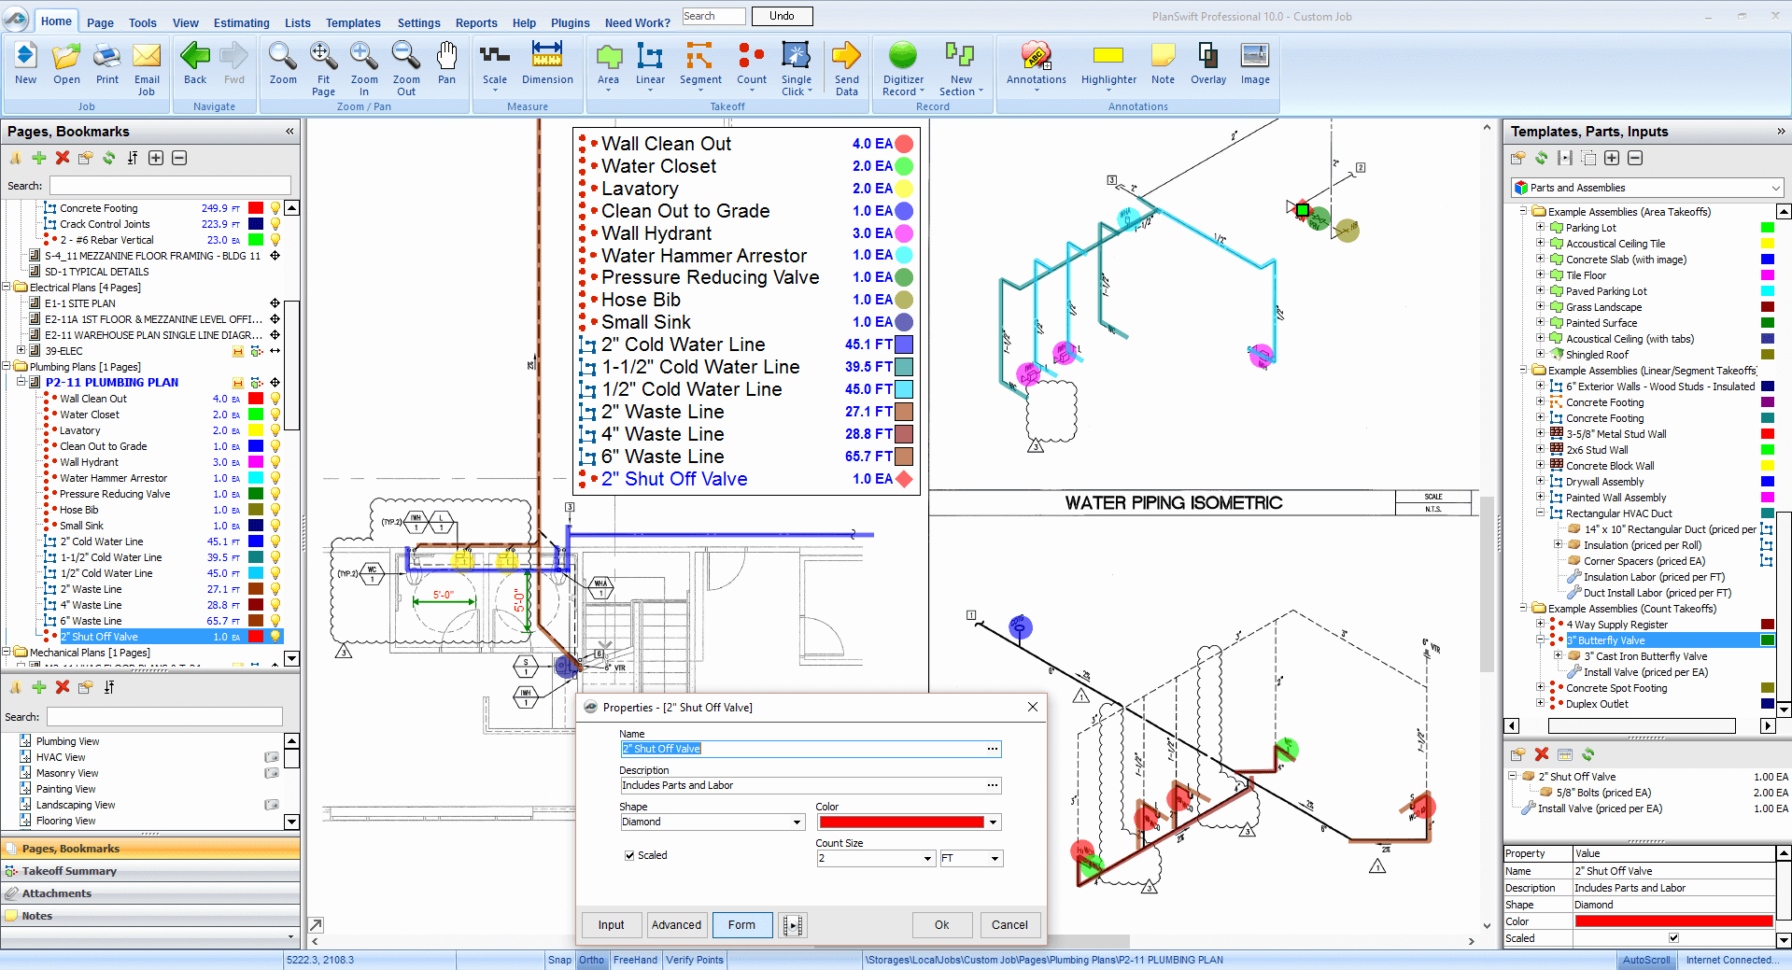 Piping Takeoff Spreadsheet Unique Plumbing Estimating Software With Piping Takeoff Spreadsheet